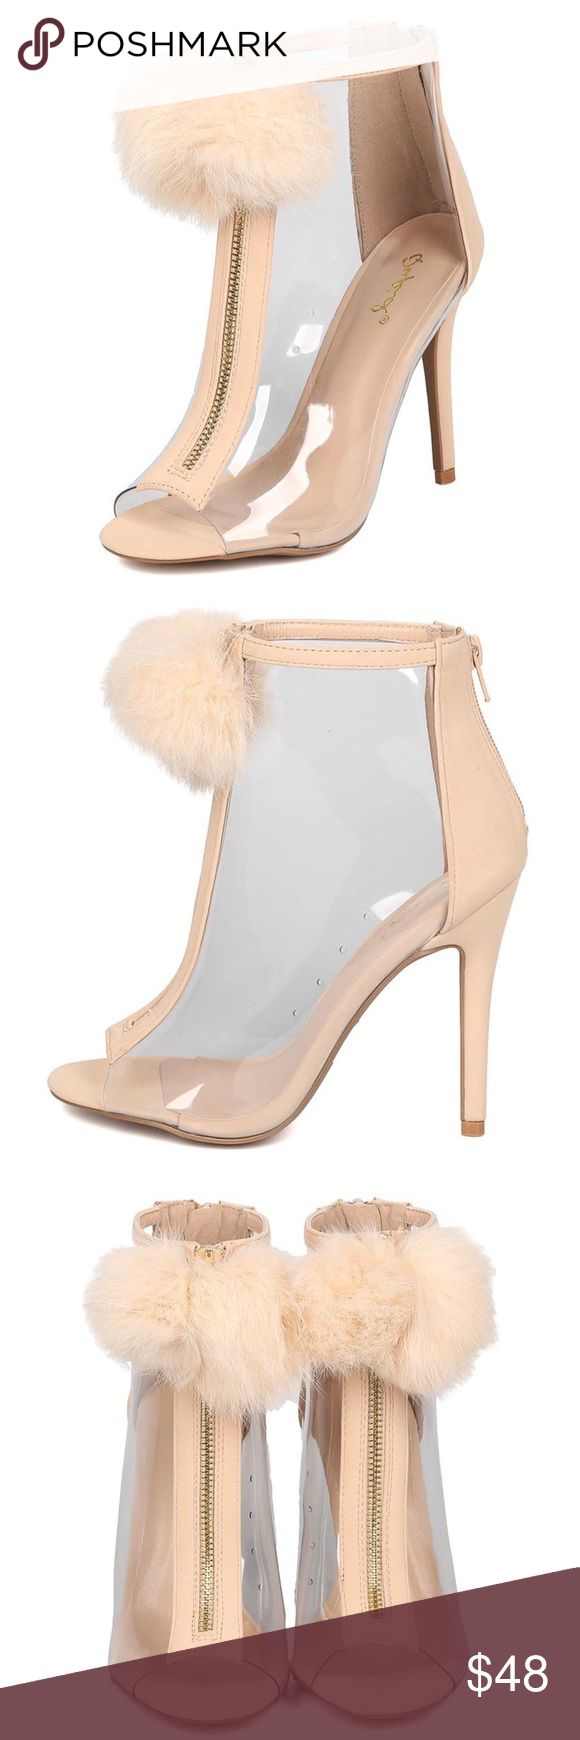 ARA NUDE NUBUCK CLEAR POM POM PEEP TOE HEEL ON DEMAND  There just SO PRETTY! Features a large fuzzy pom pom on front decorative zipper pull. Back zipper closure.  Peep toe, clear sides walls, and stiletto heel. Man made materials.   Approximate heel height 4 1/2 inches. SHIPPING MIGHT TAKE UP TO 3 DAYS DUE TO AVAILABILITY Qupid Shoes Ankle Boots & Booties